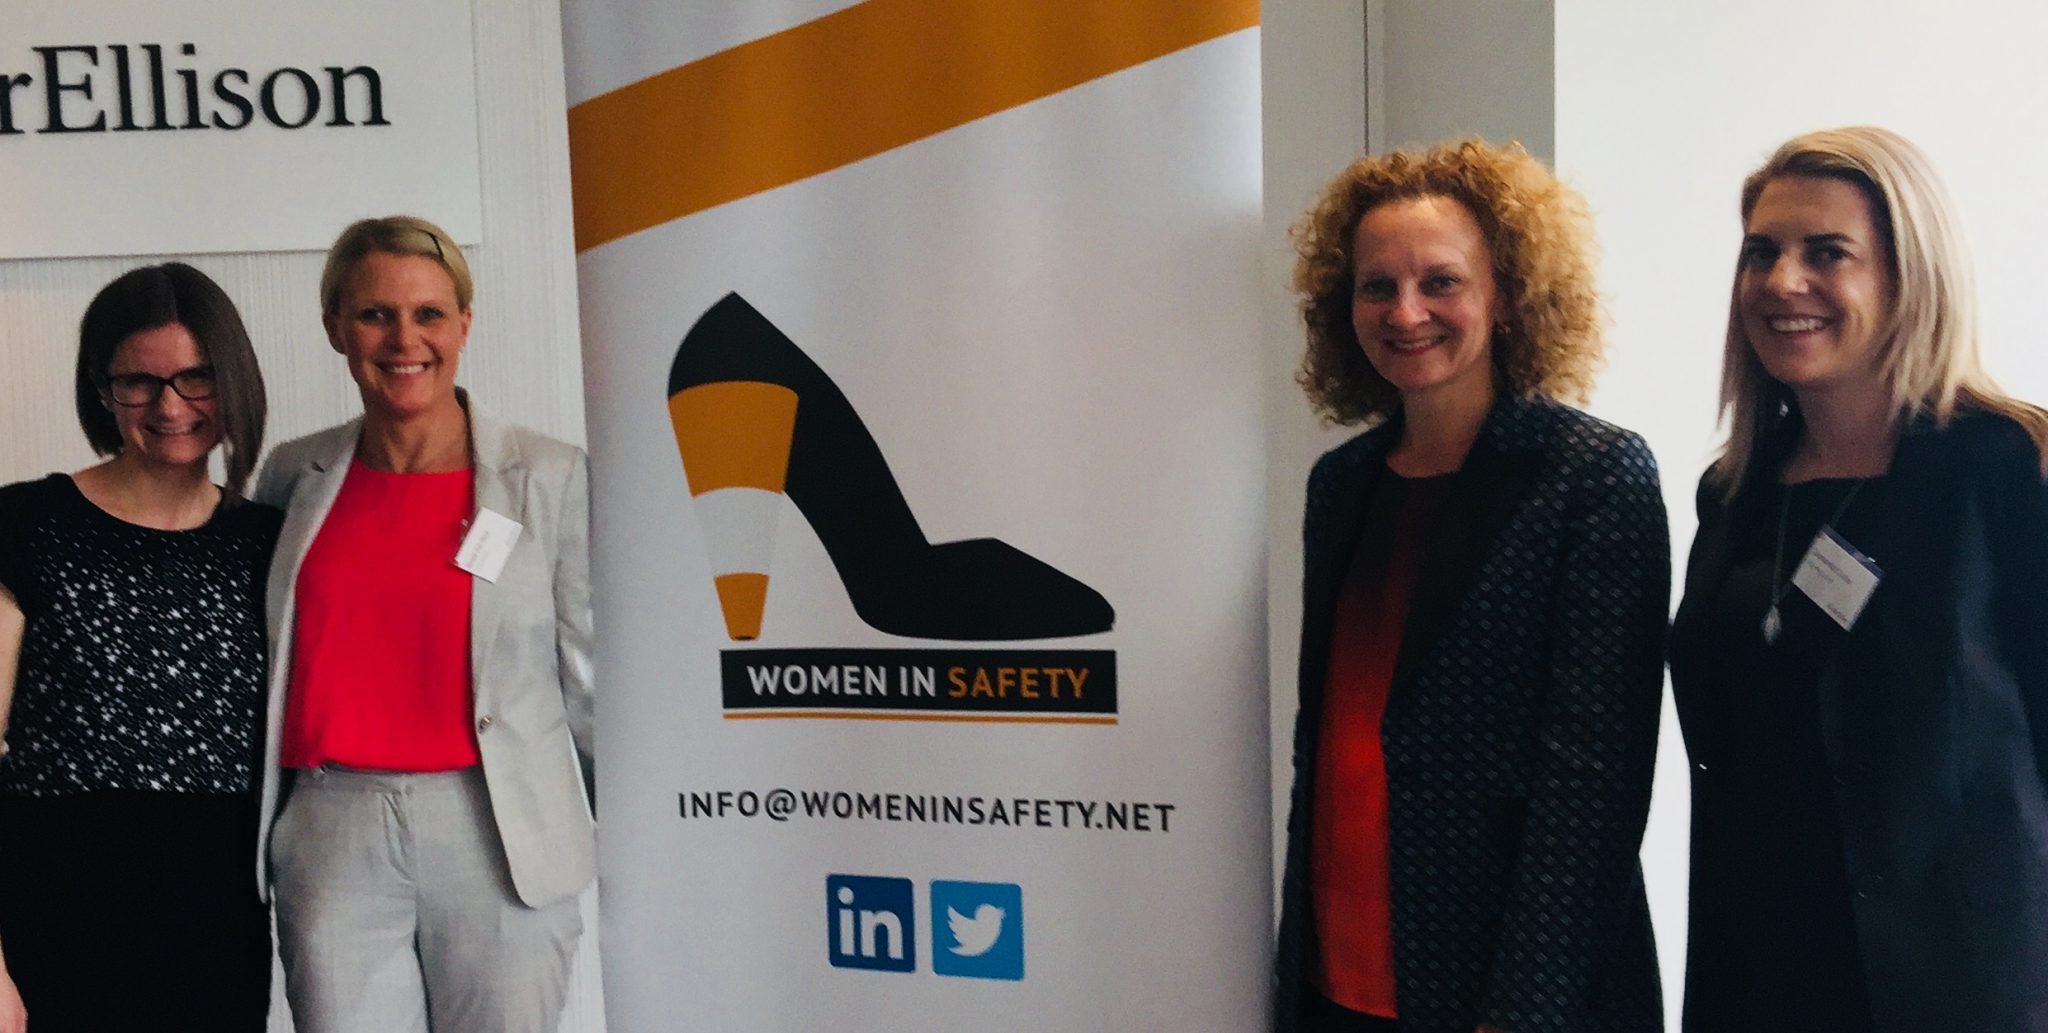 Women in Safety